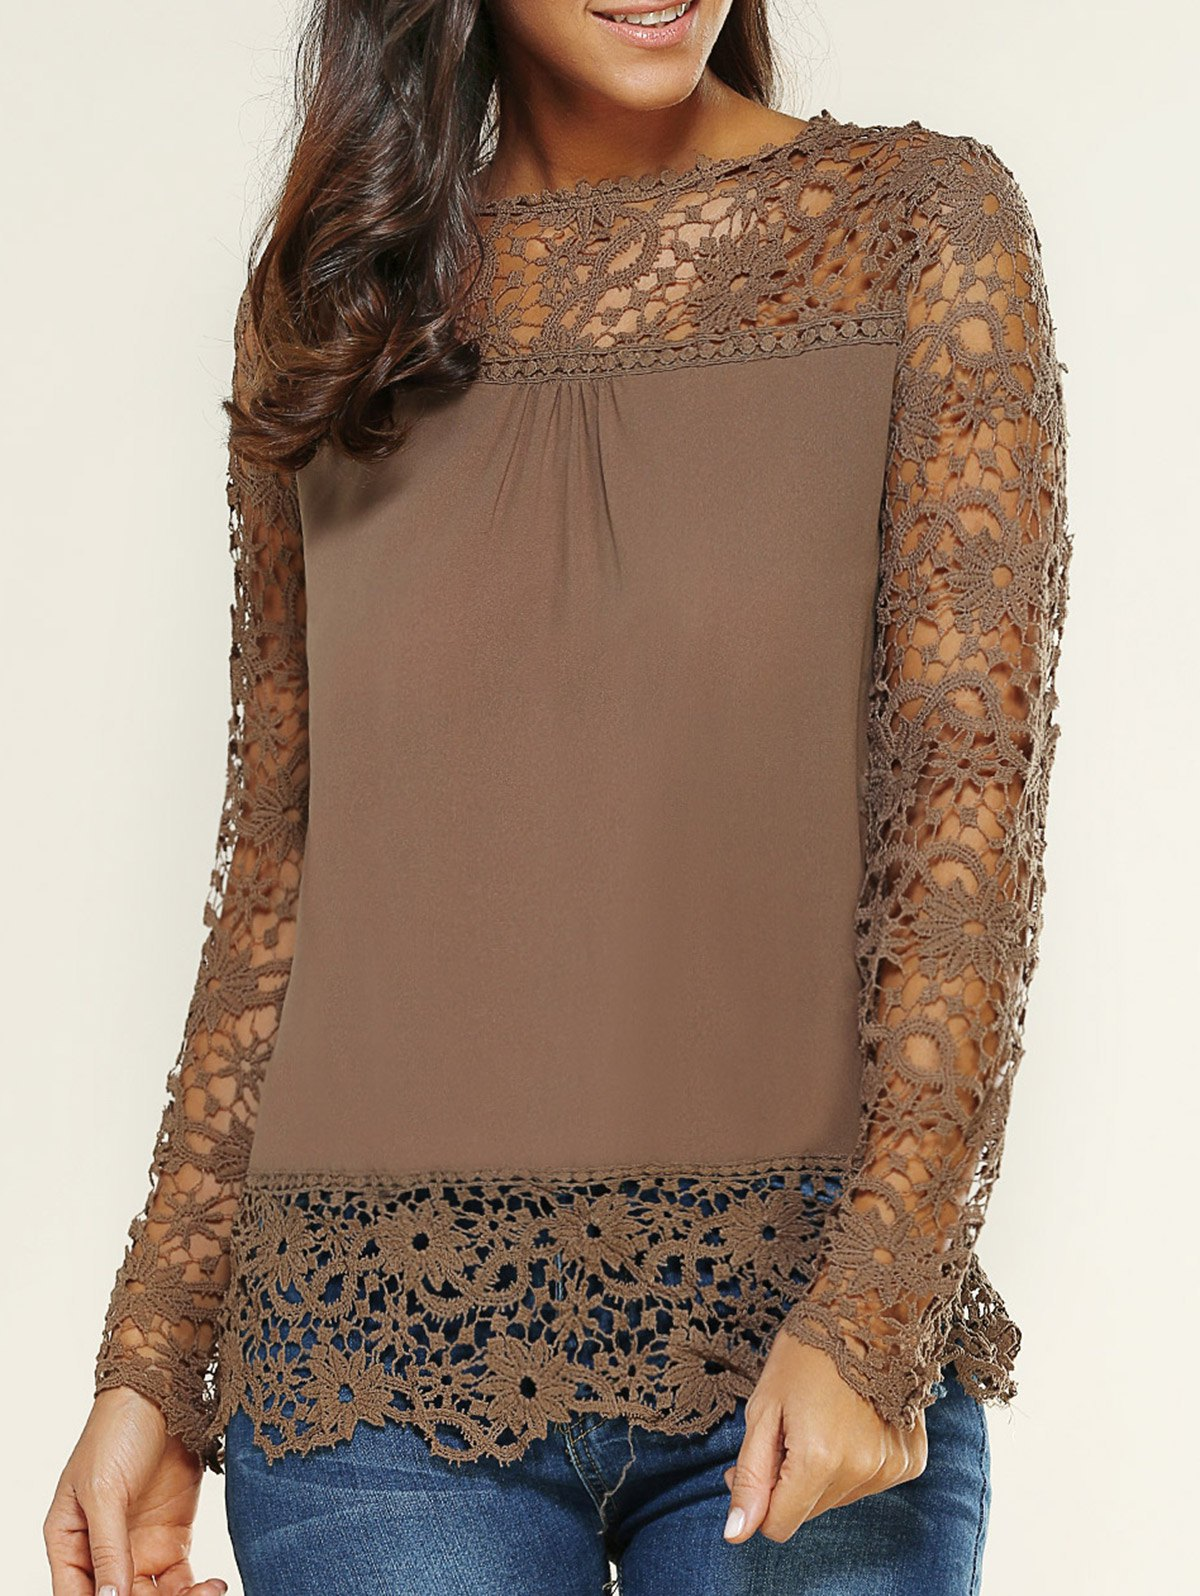 5c93648685bc6 2018 Lace Spliced Floral Crochet Openwork Blouse In Light Coffee M ...